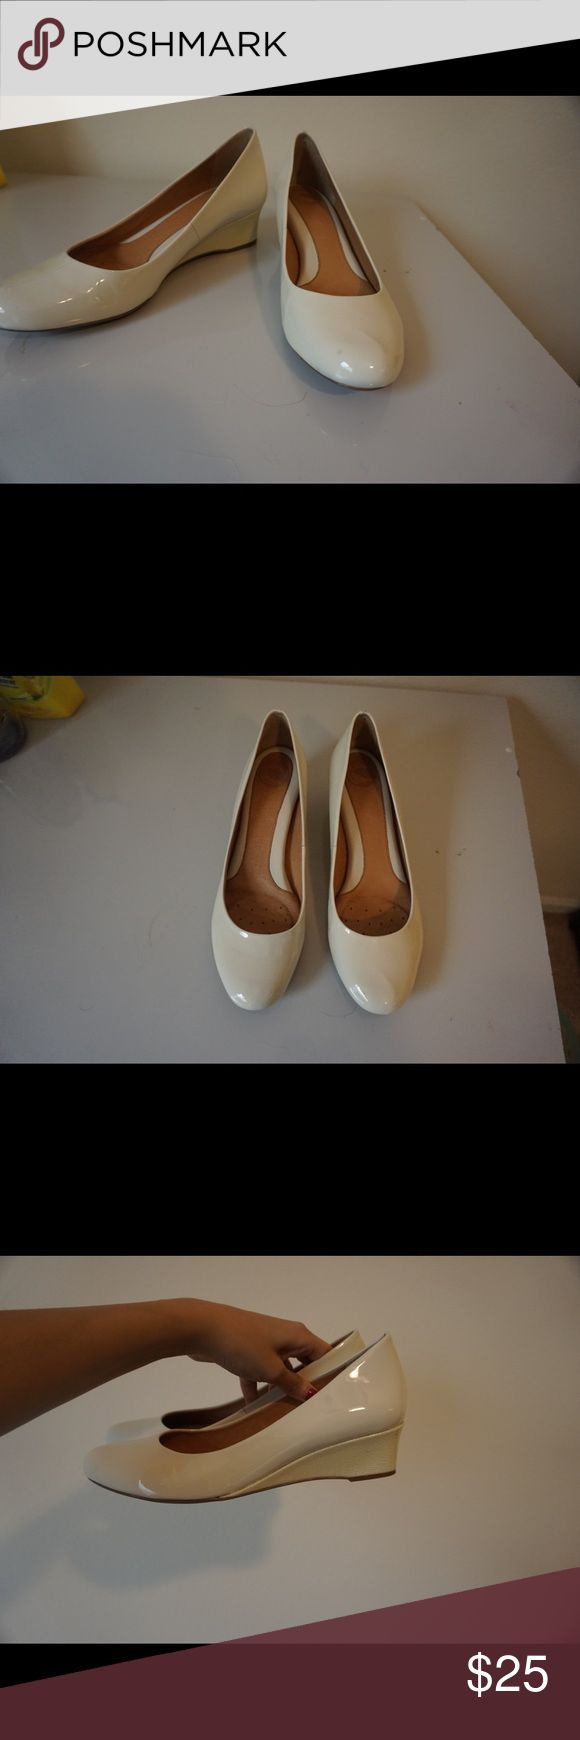 Nurture Cream wedges Gently used wedges that are in great condition! Nurture by Lamaze Shoes Wedges